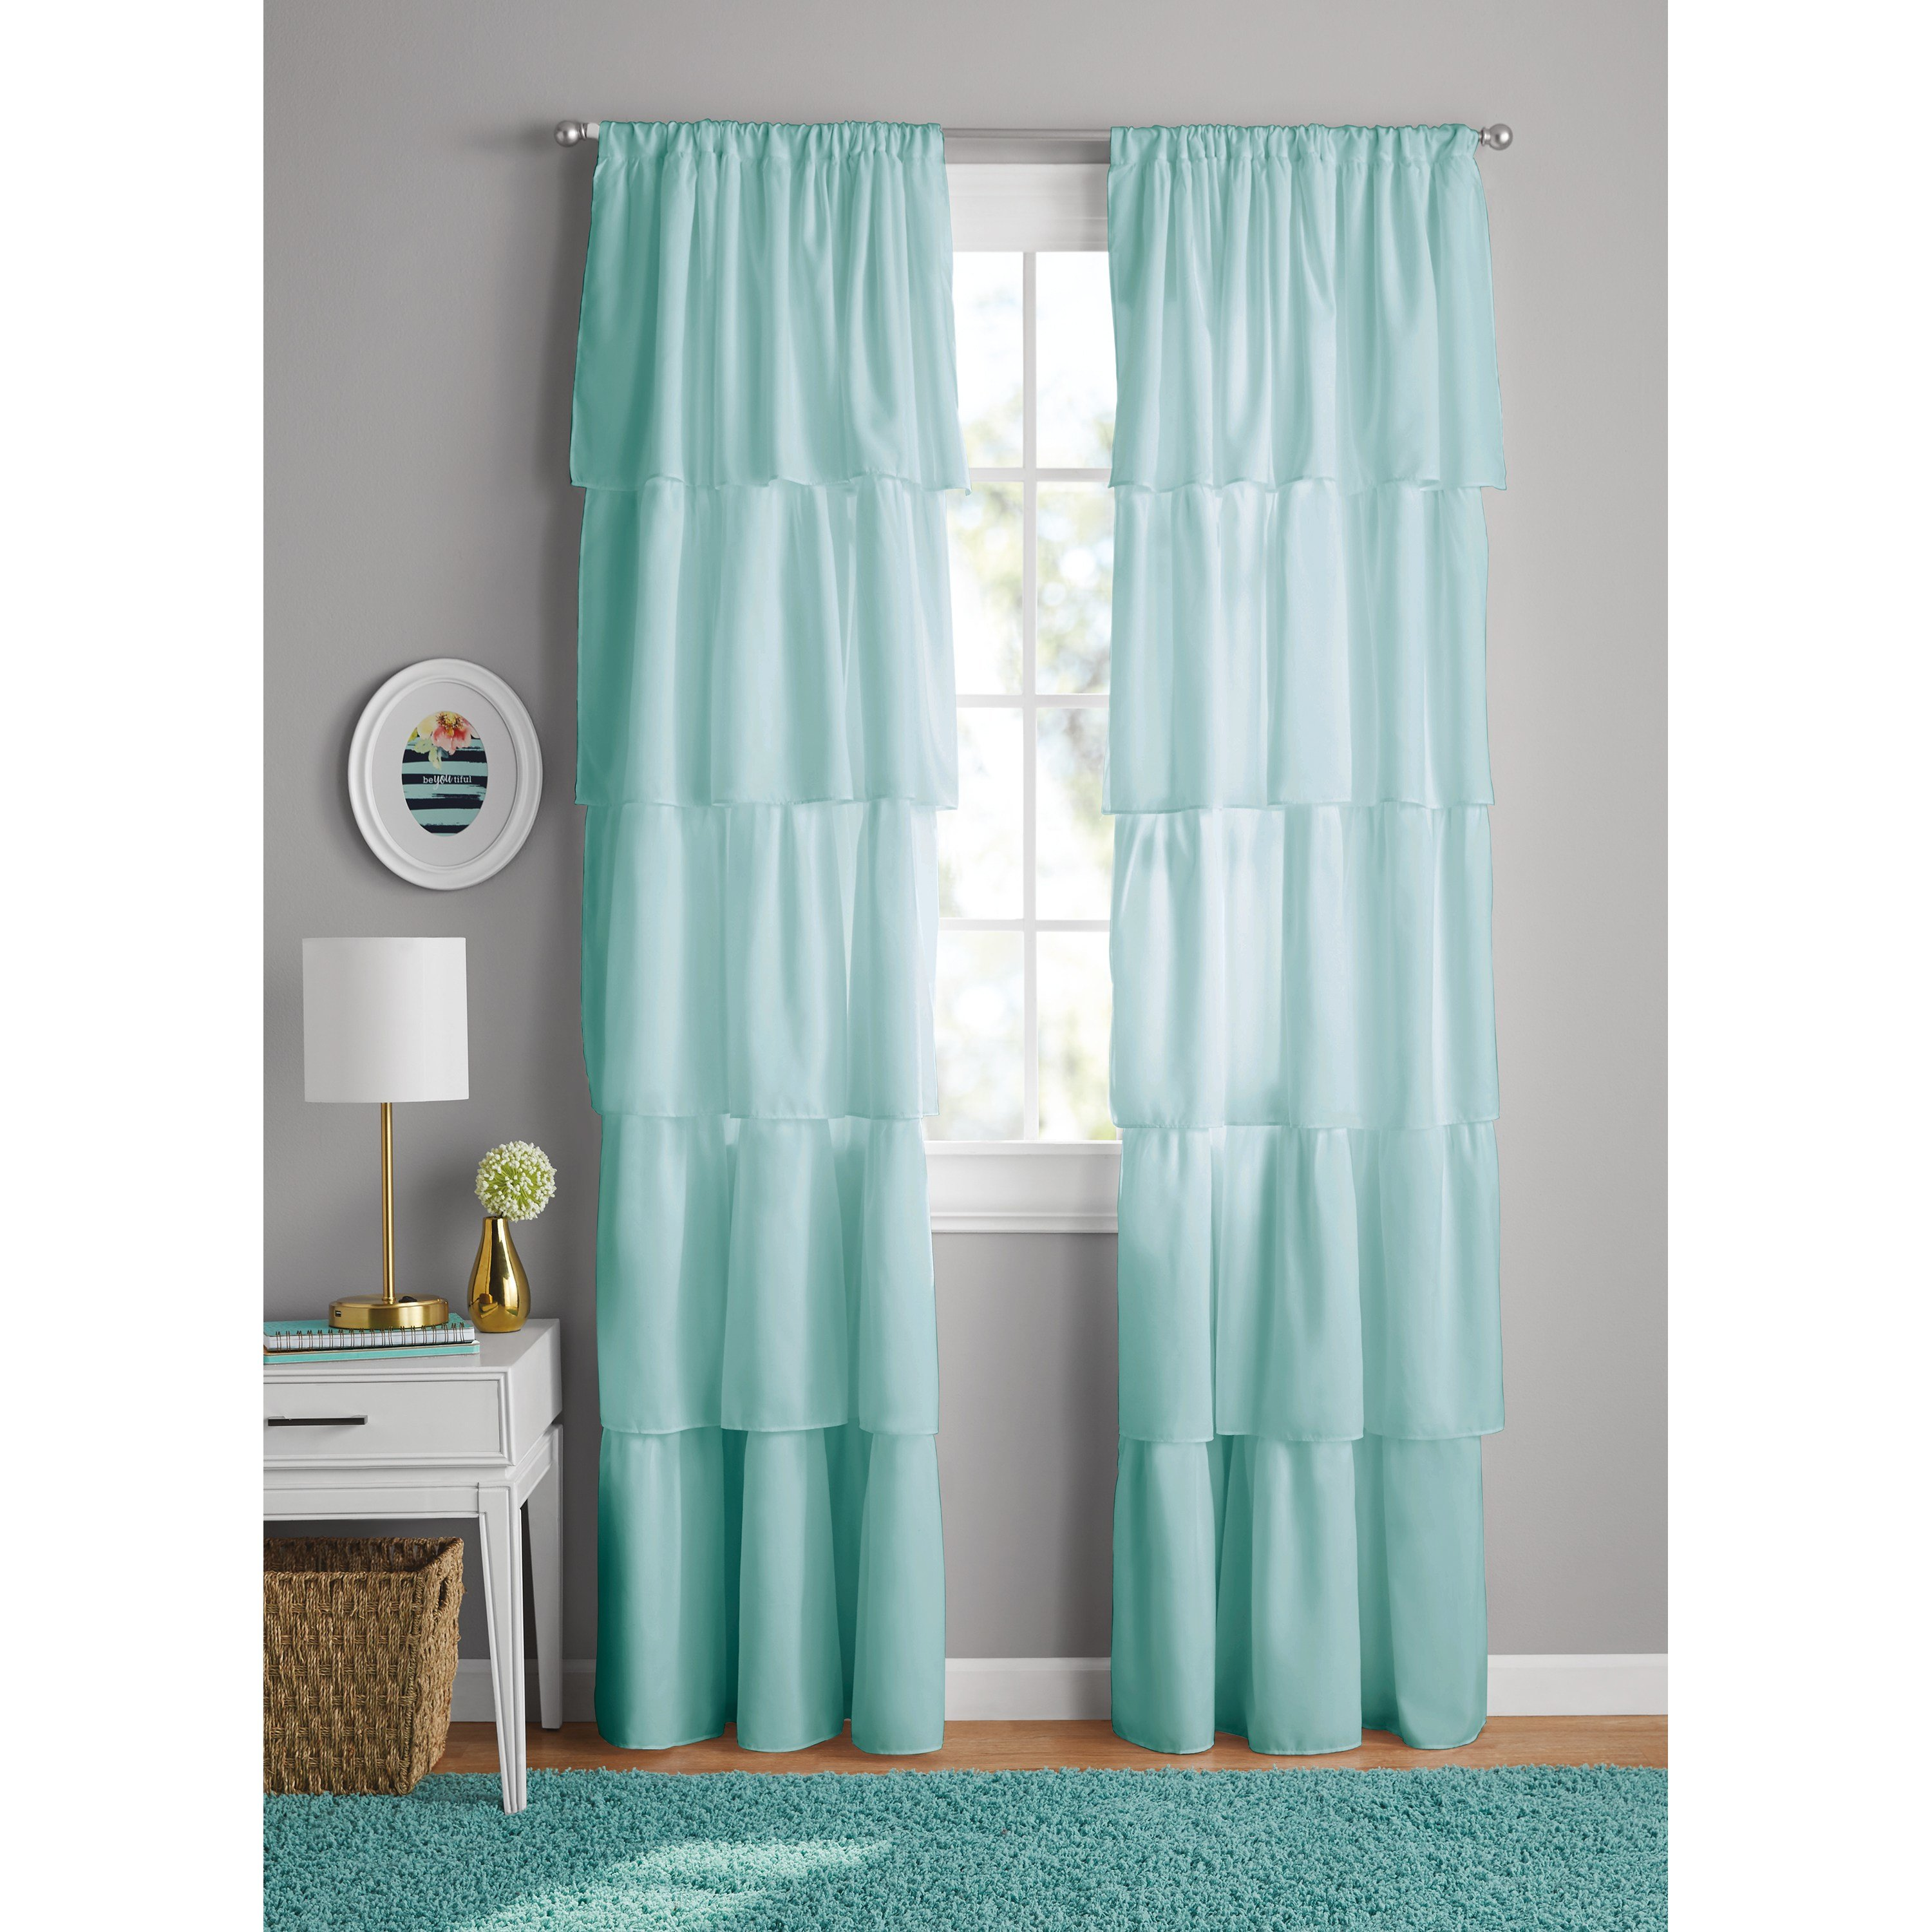 Best Your Zone Ruffle Girls Bedroom Curtain Walmart Com With Pictures